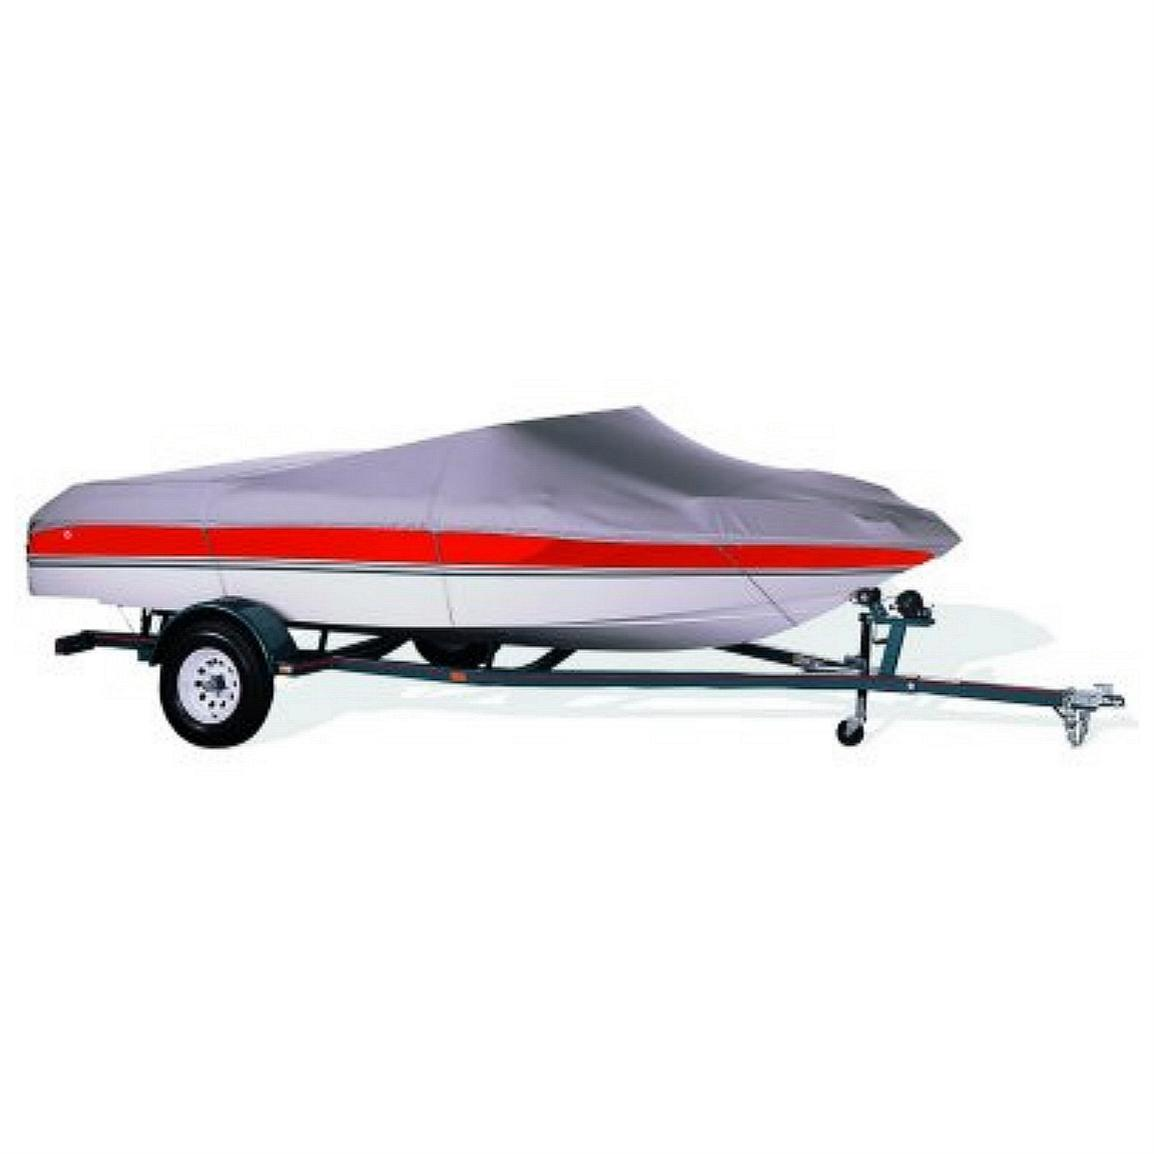 Attwood Weather Ready Mooring and Storage Universal Boat Cover